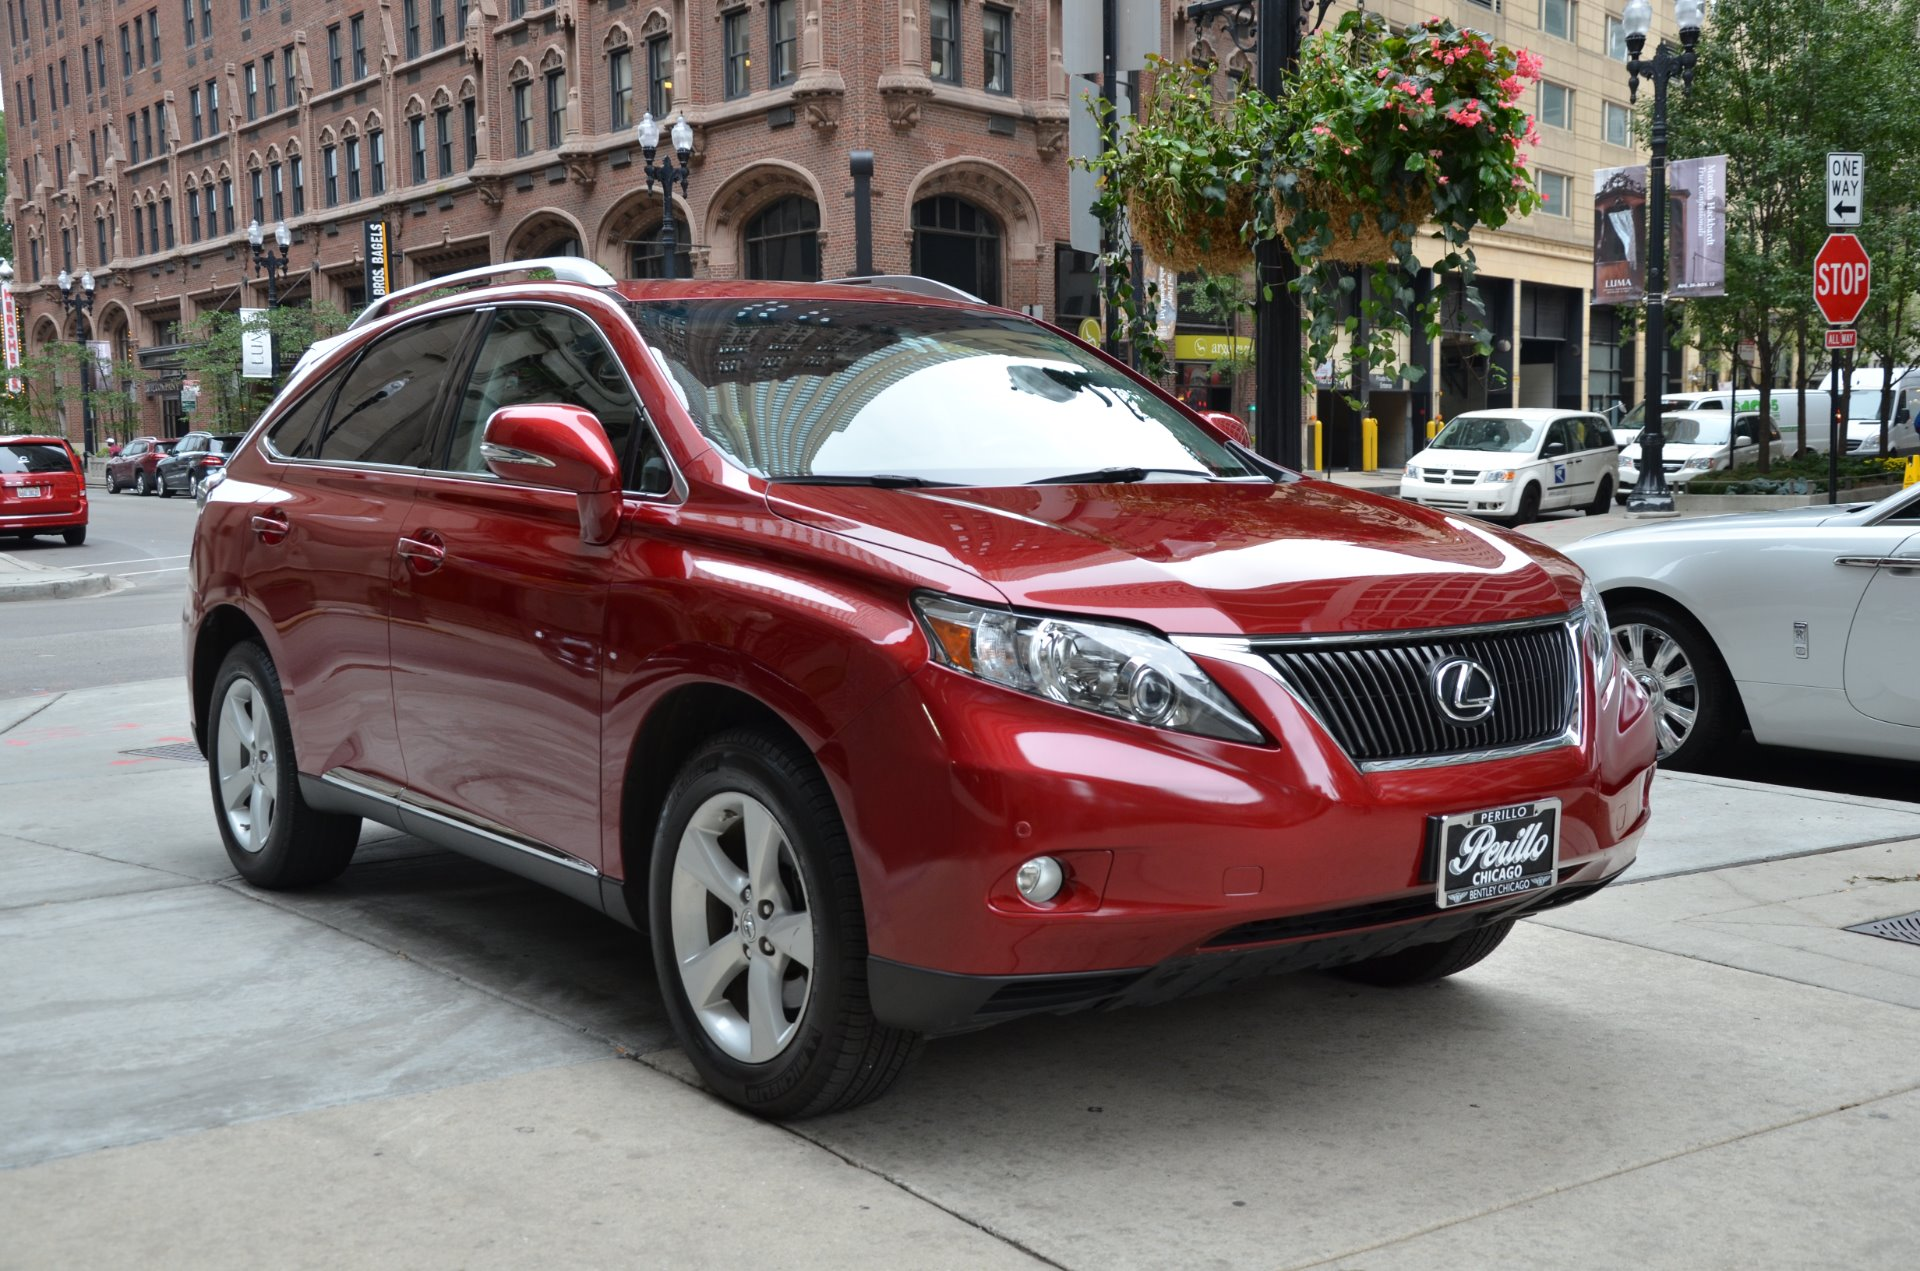 2012 lexus rx 350 stock m526a for sale near chicago il il lexus dealer. Black Bedroom Furniture Sets. Home Design Ideas